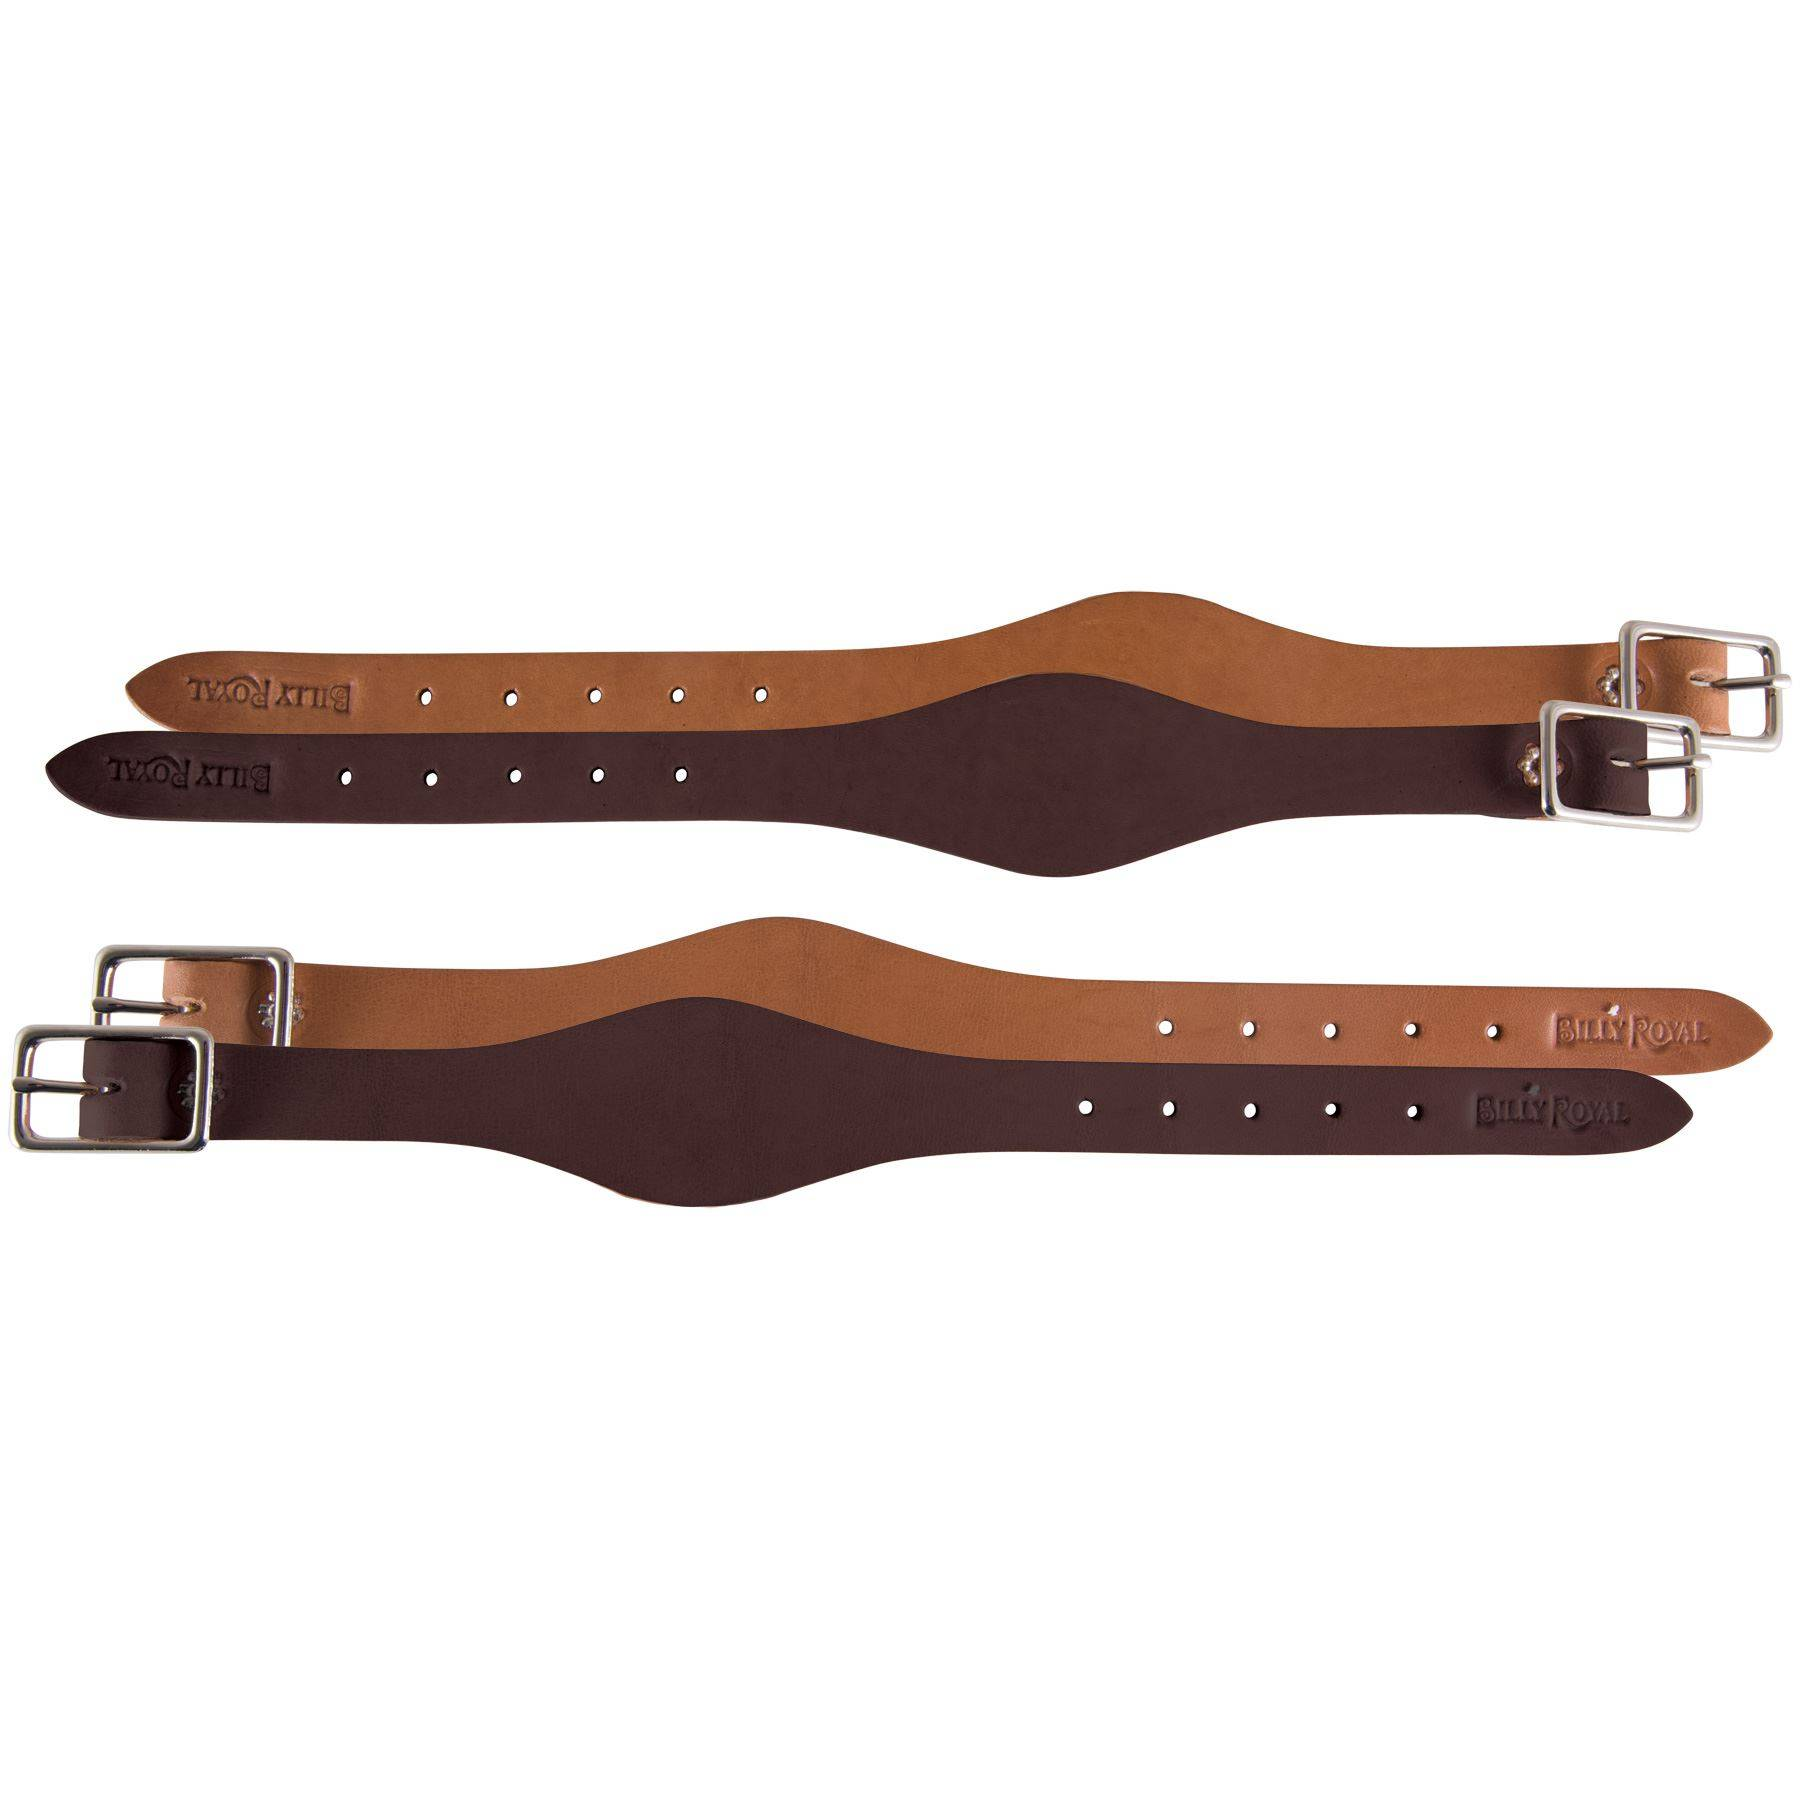 SMOOTH LEATHER BROWN FENDER HOBBLE STRAP REPLACEMENT HORSE WESTERN SADDLE TACK